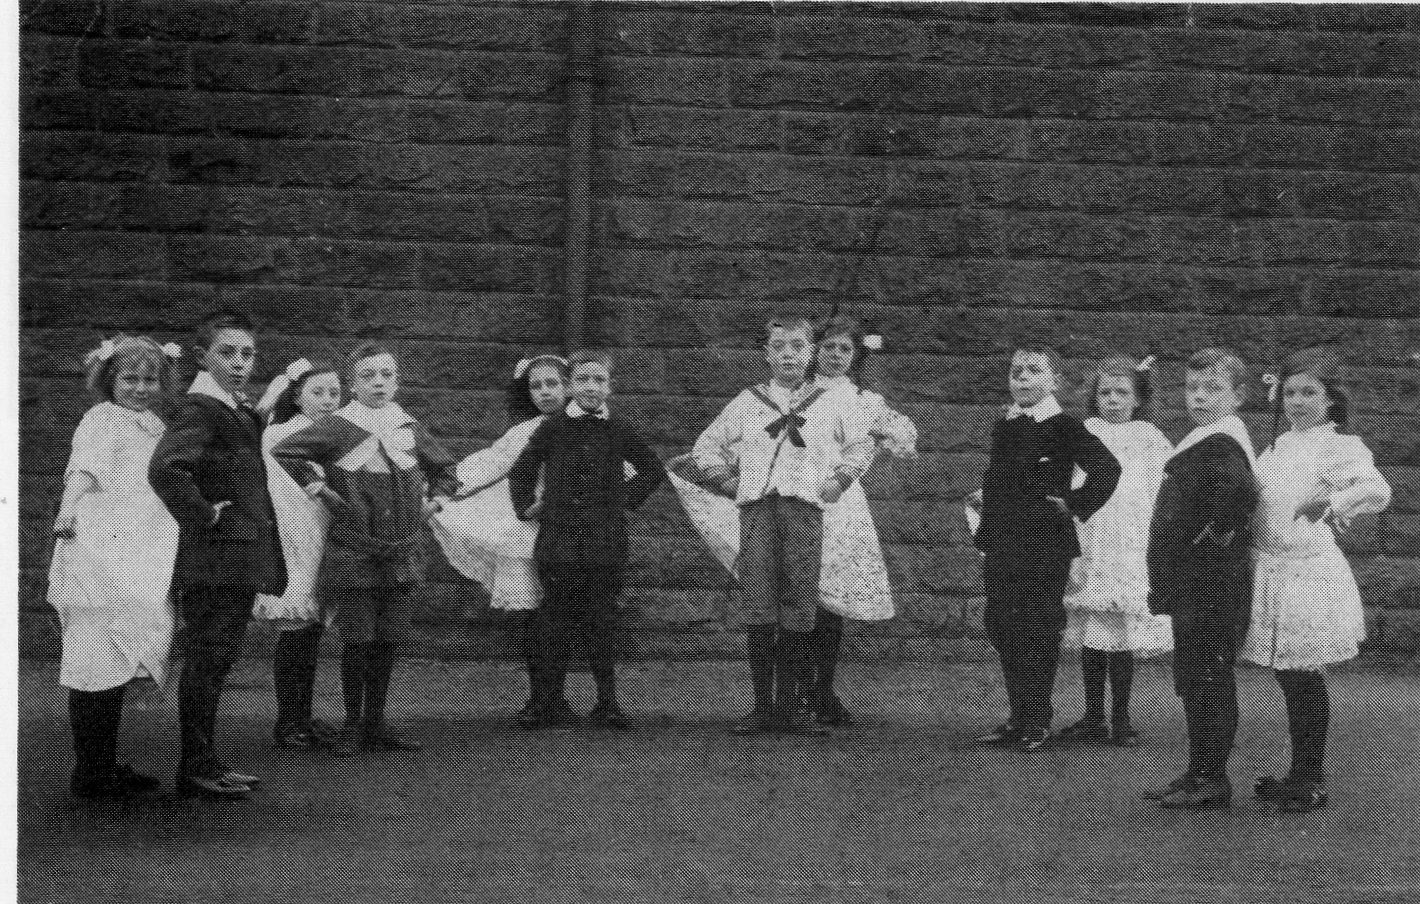 A group of New Park School pupils taking part in a formal dancing lesson c1912